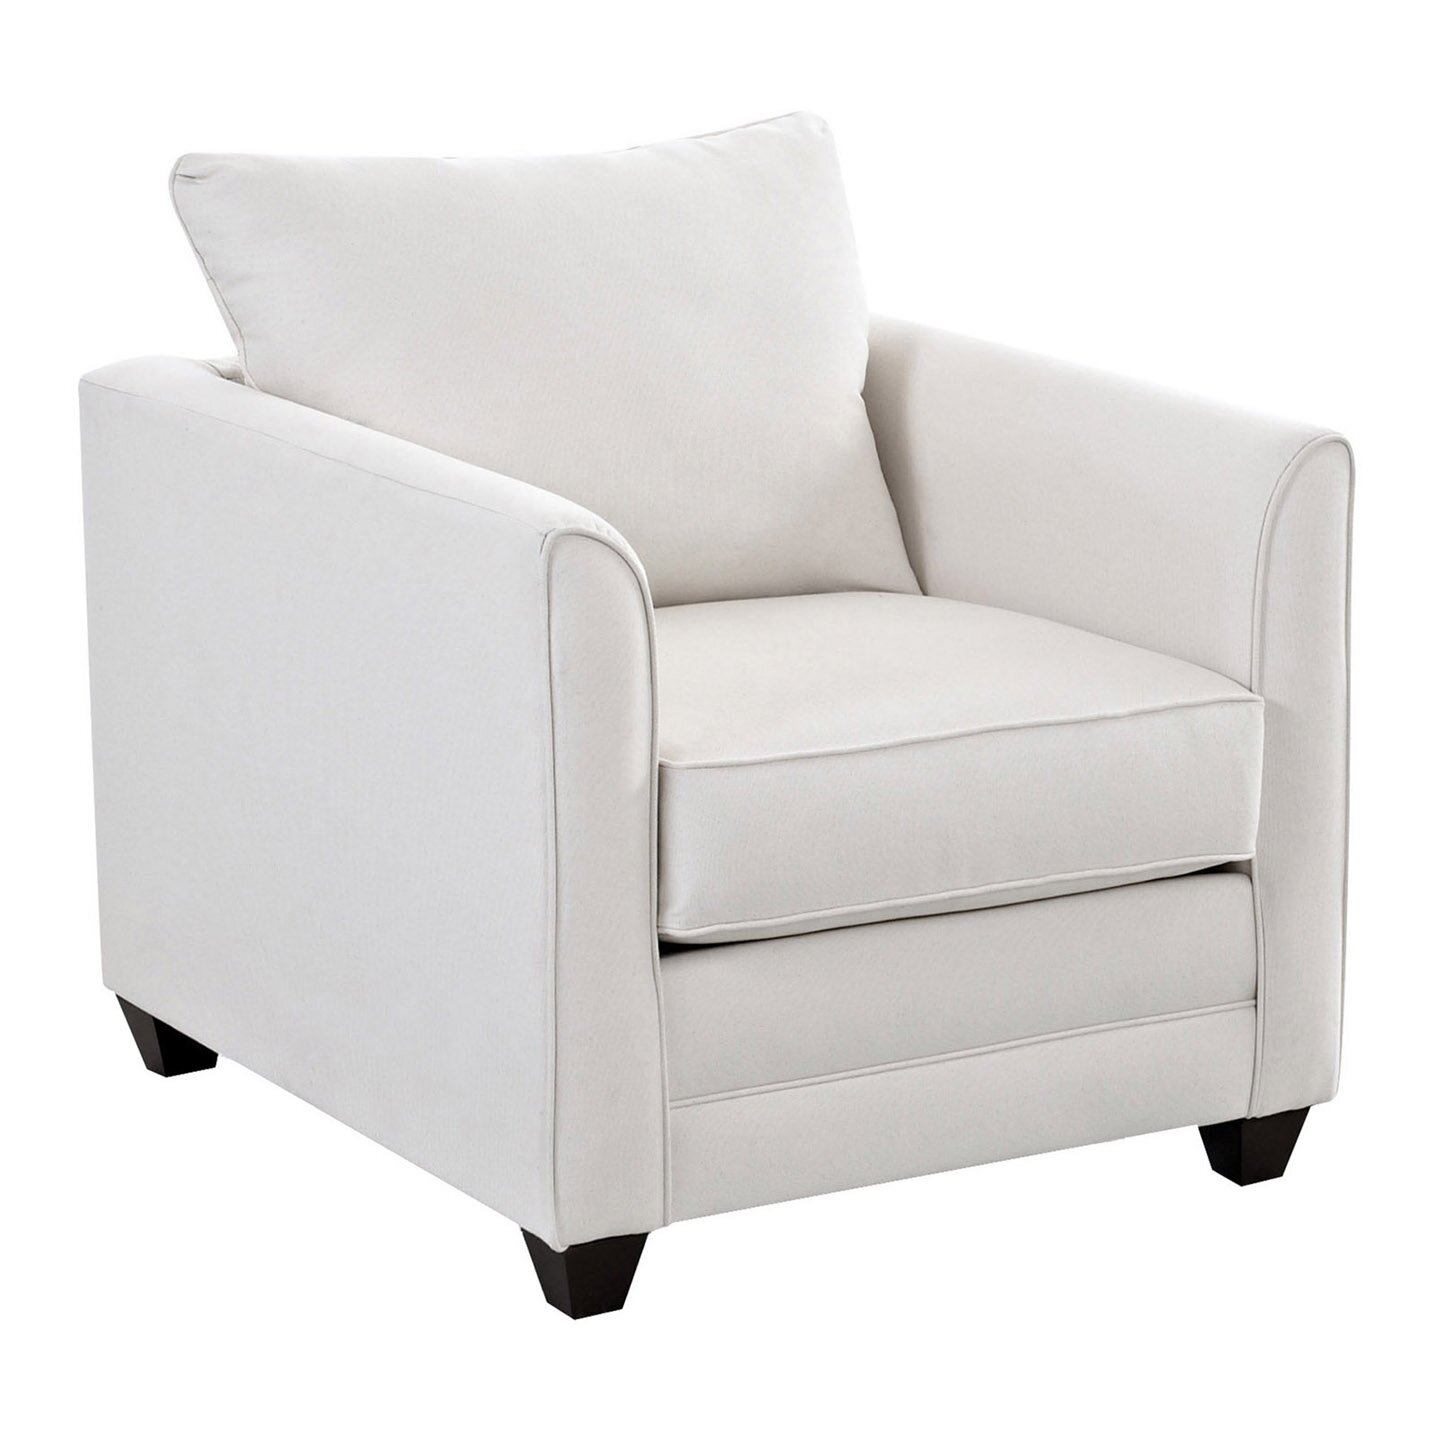 Wayfair Custom Upholstery Sarah Arm Chair Reviews Wayfair